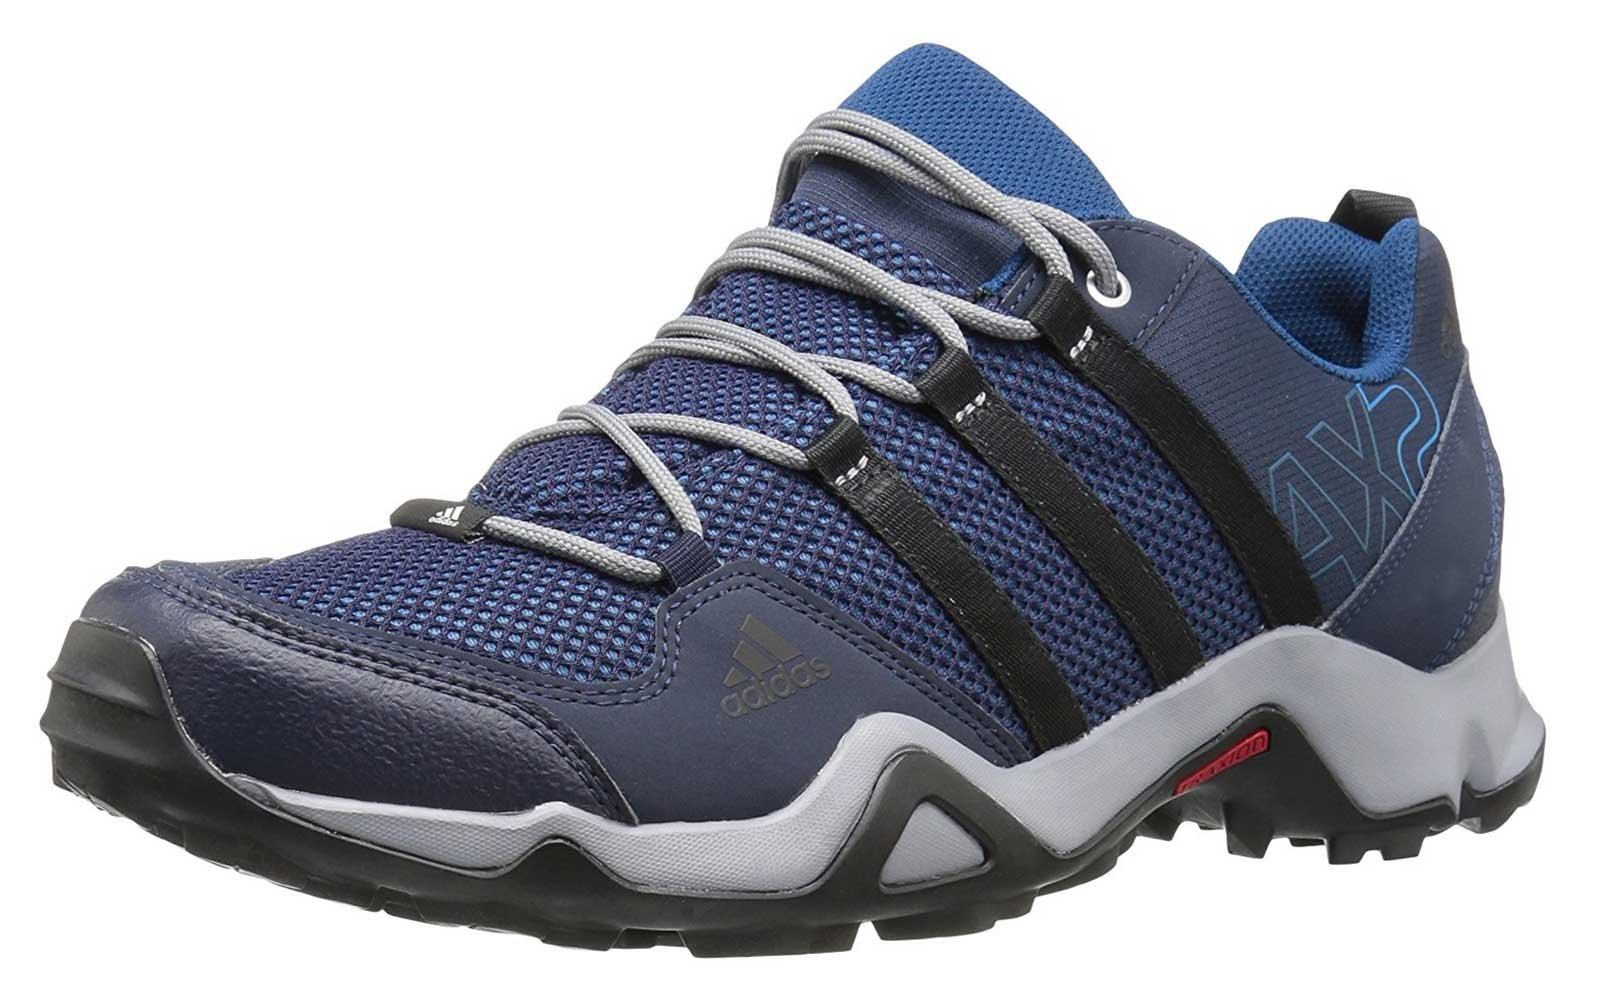 387c4e2cfabcc The 10 Best Hiking Shoes on Amazon | Travel + Leisure